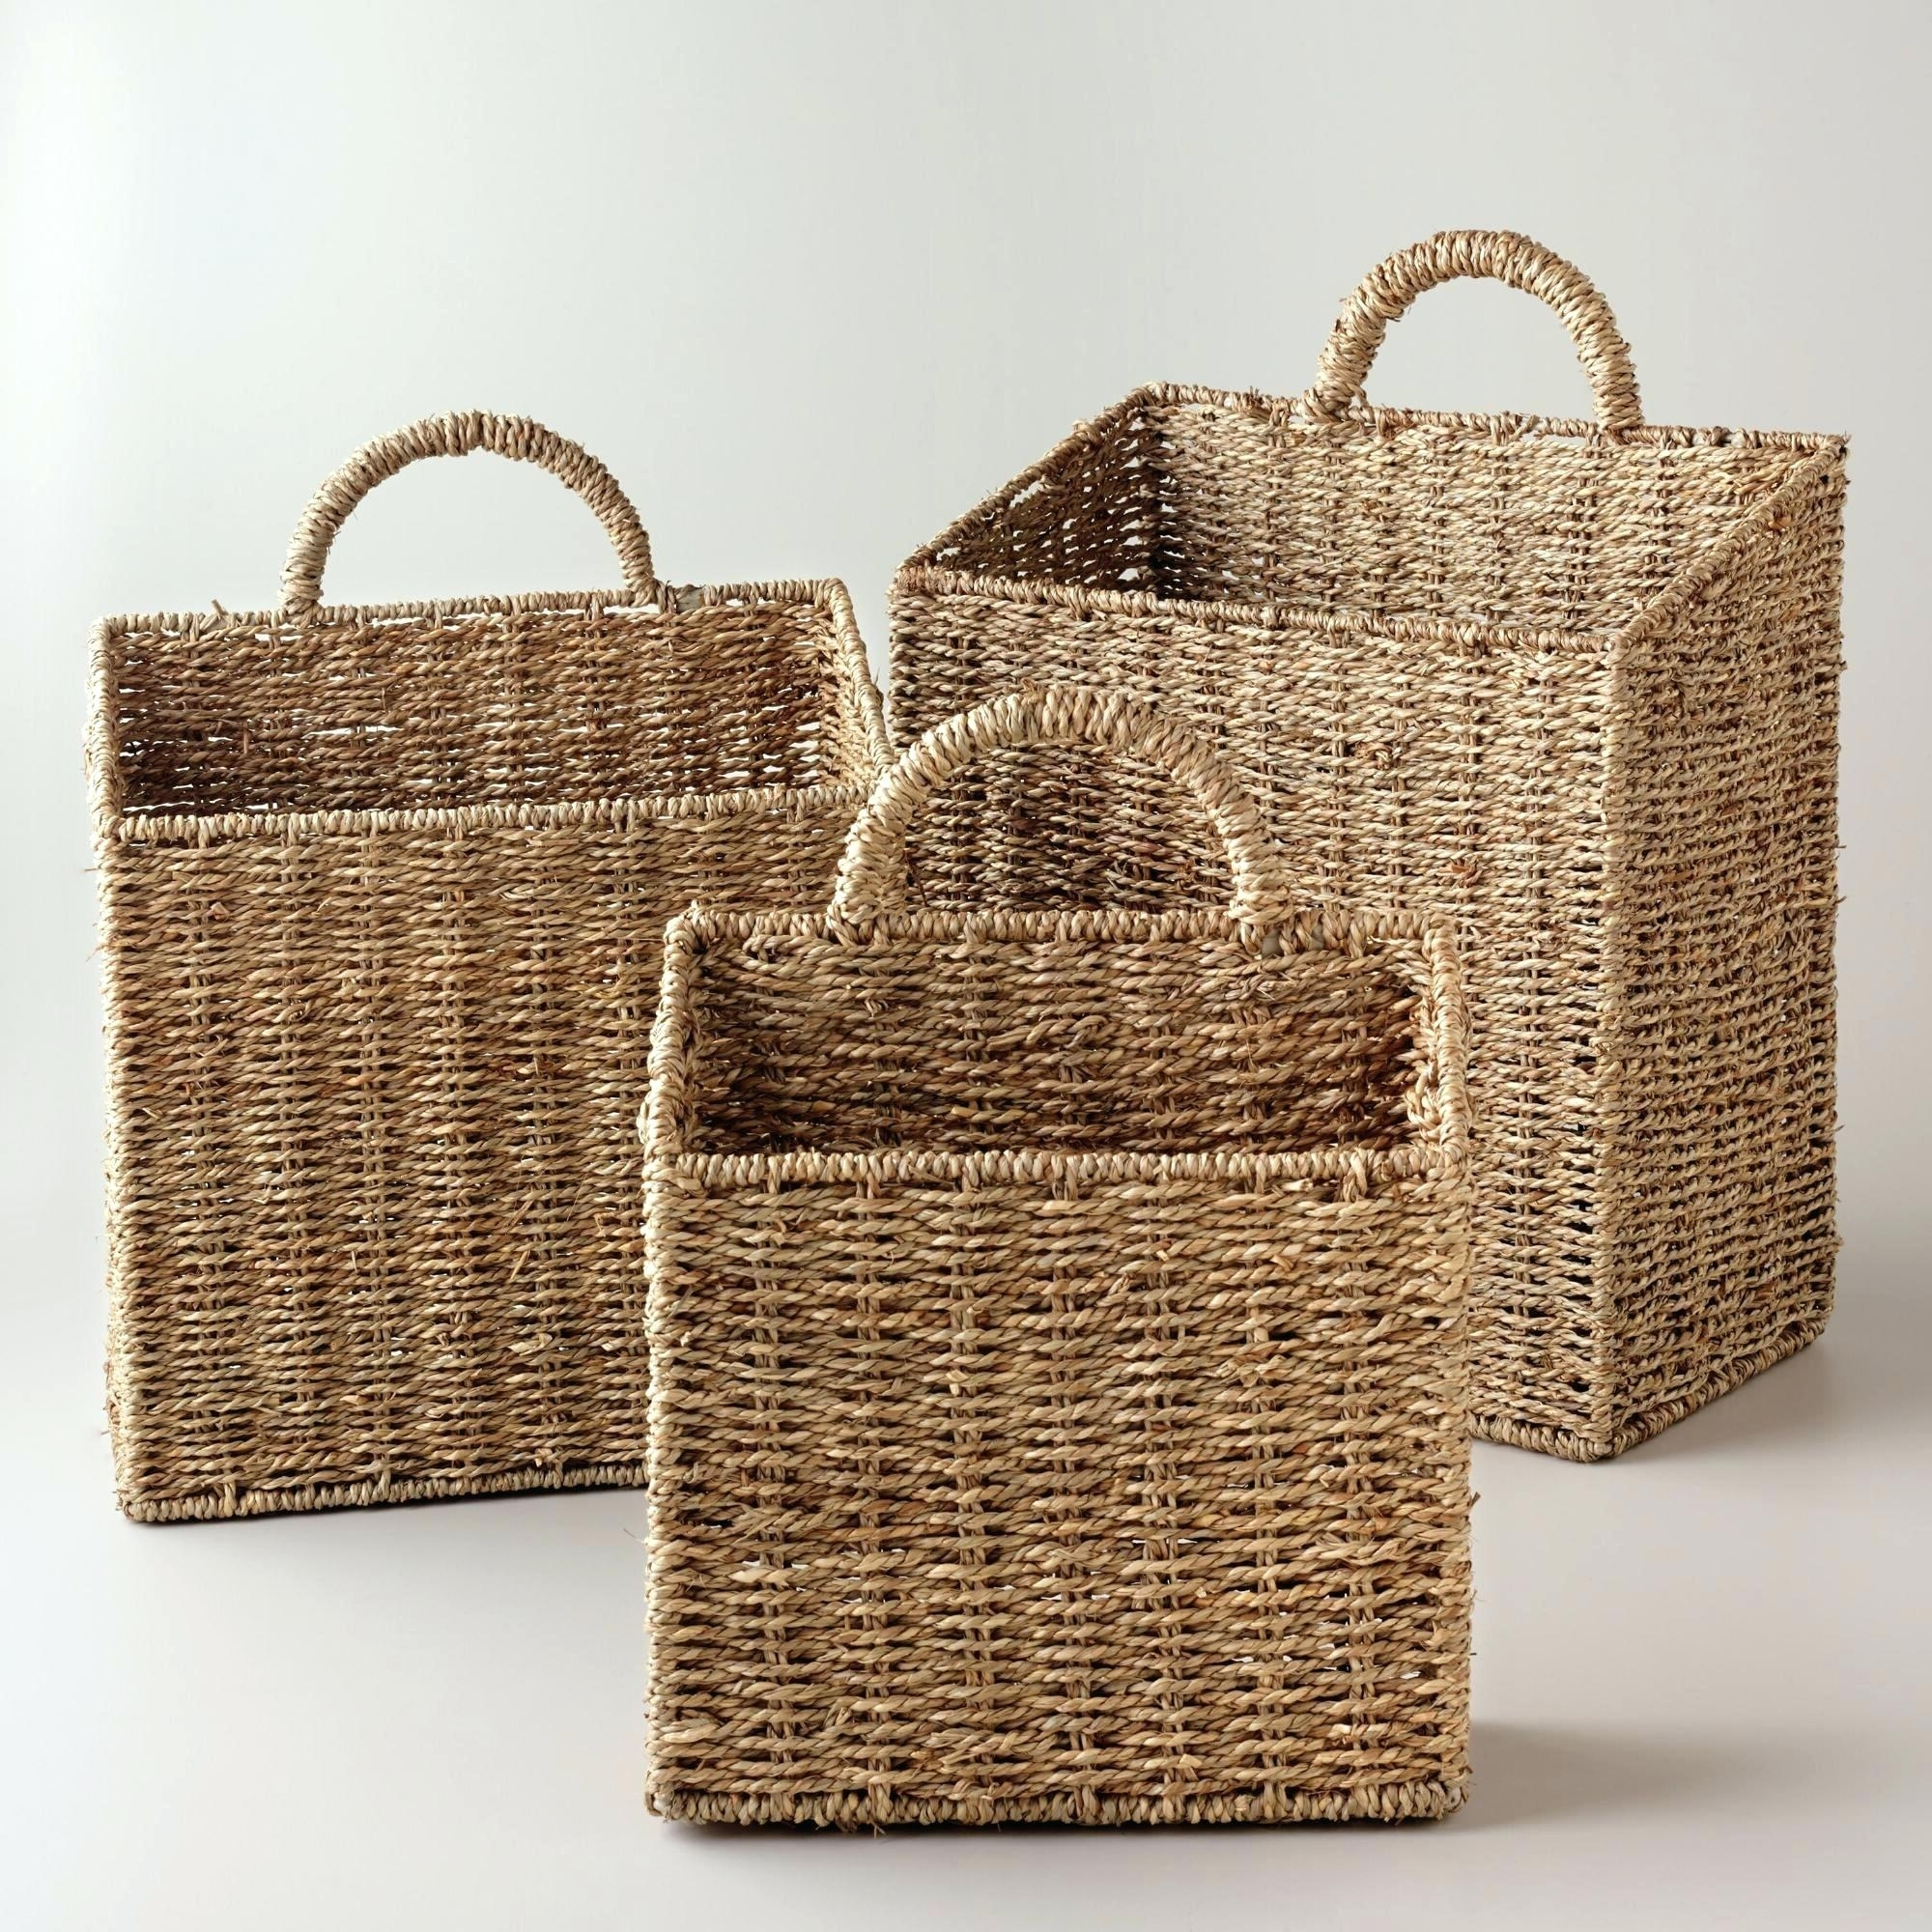 Woven Basket Wall Art Regarding Well Known Wicker Wall Art Wicker Wall Baskets La Rattan Wall Basket Large (View 15 of 15)